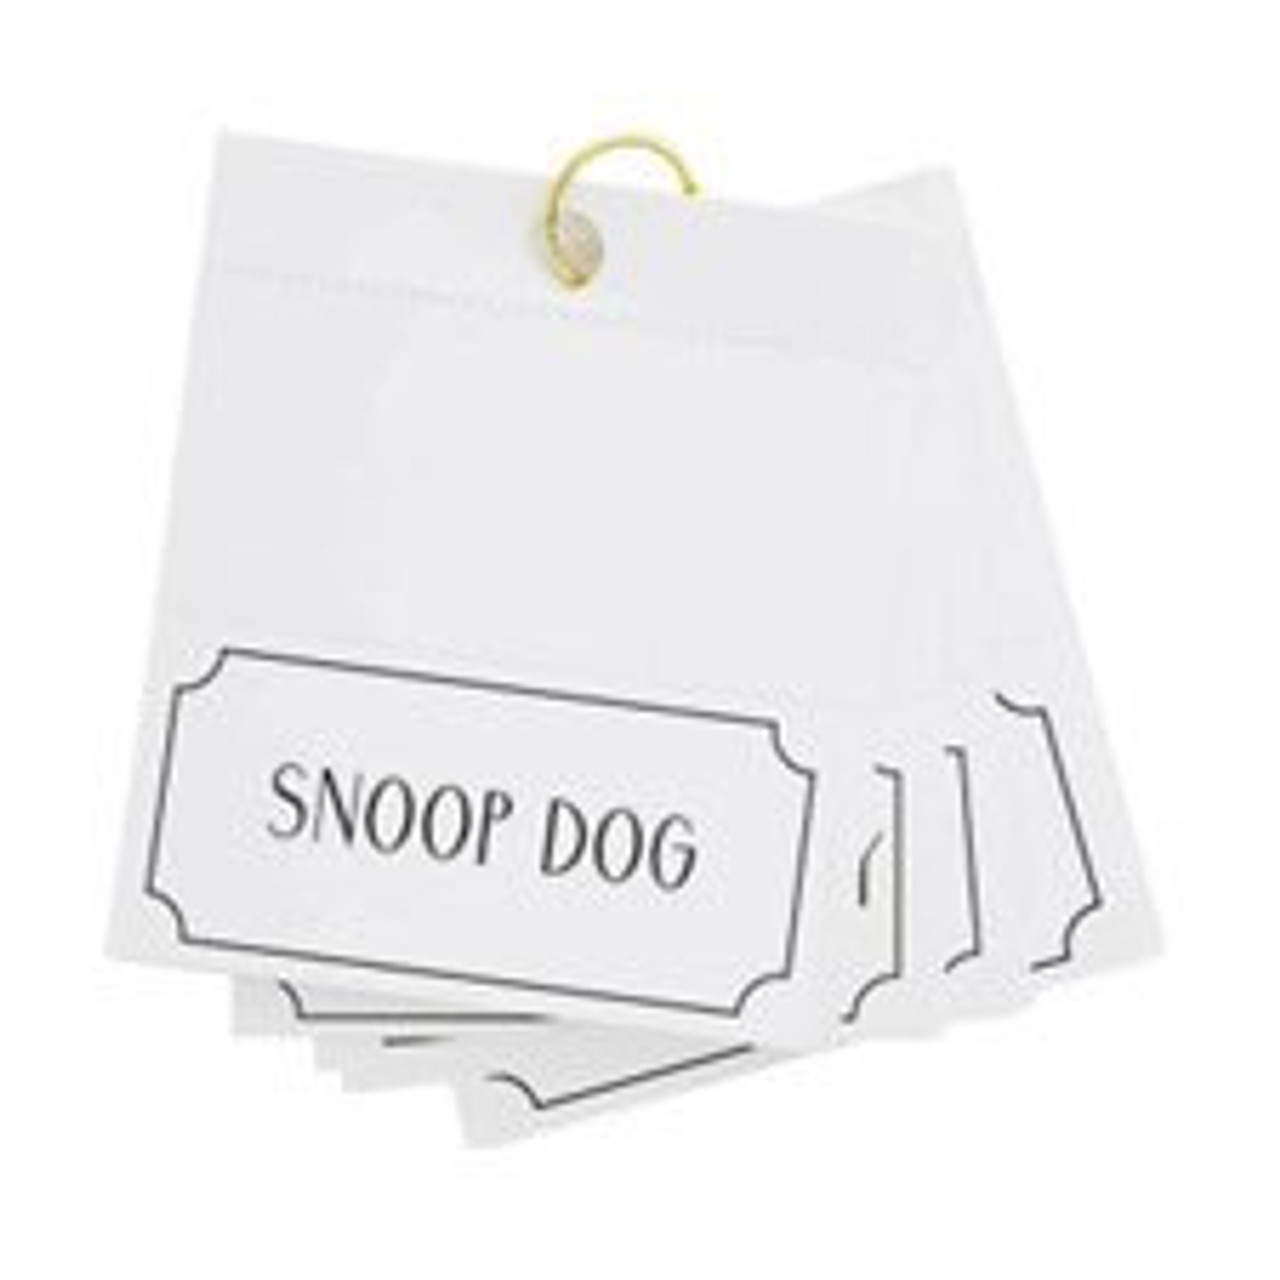 """Bring some laughs and rock & roll to your next dinner party with a set of male rockstar place cards. Folded cards measure 2 3/8"""" H x 4 3/4"""" W.  This set of 24 cards features some of the most recognized names from the concert stage including Snoop Dog, Elton John, Bono, Eric Clapton, John Lennon, Jon Bon Jovi, Freddie Mercury, Bob Dylan, Ringo Starr, Mick Jagger, Paul McCartney, Ed Sheeran, David Bowie, Phil Collins, Kanye West, Stevie Wonder, Ice Cube, The Weekend, Jay Z, Drake, Bruno Mars, Prince, Bruce Springsteen, Alice Cooper"""